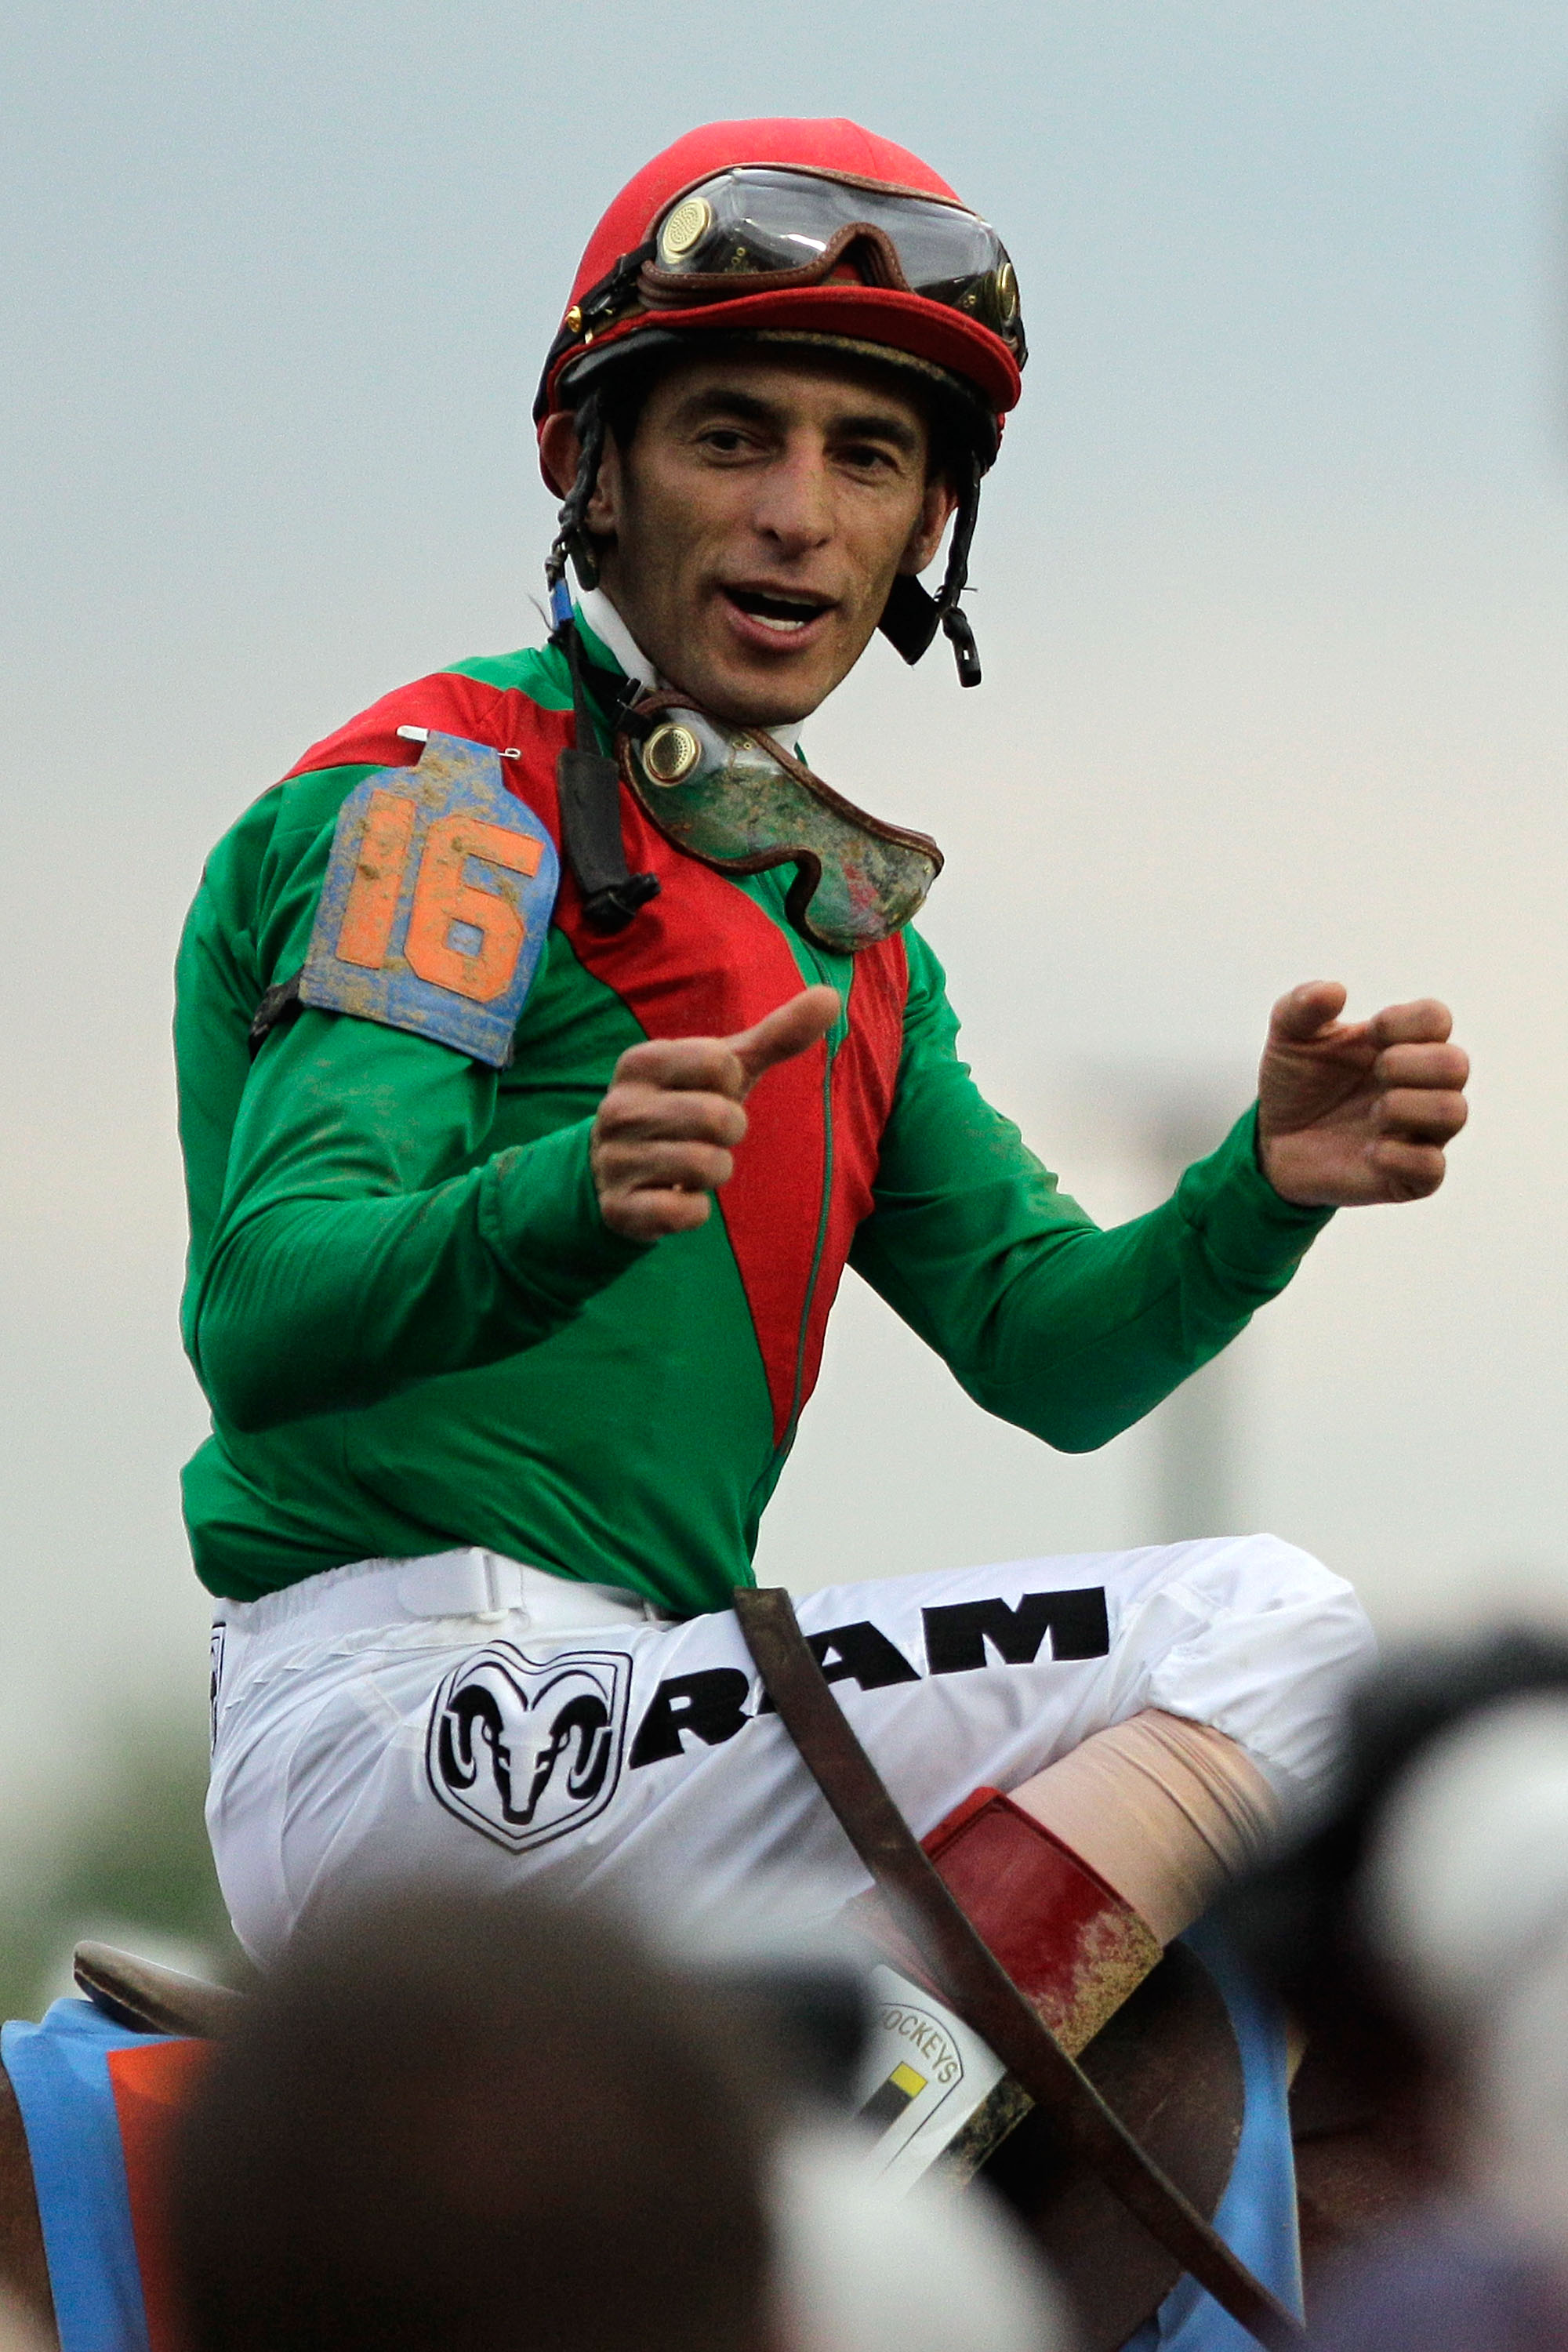 LOUISVILLE, KY - MAY 07:  Jockey John Velazquez, riding Animal Kingdom #16, celebrates winning the 137th Kentucky Derby at Churchill Downs on May 7, 2011 in Louisville, Kentucky.  (Photo by Rob Carr/Getty Images)